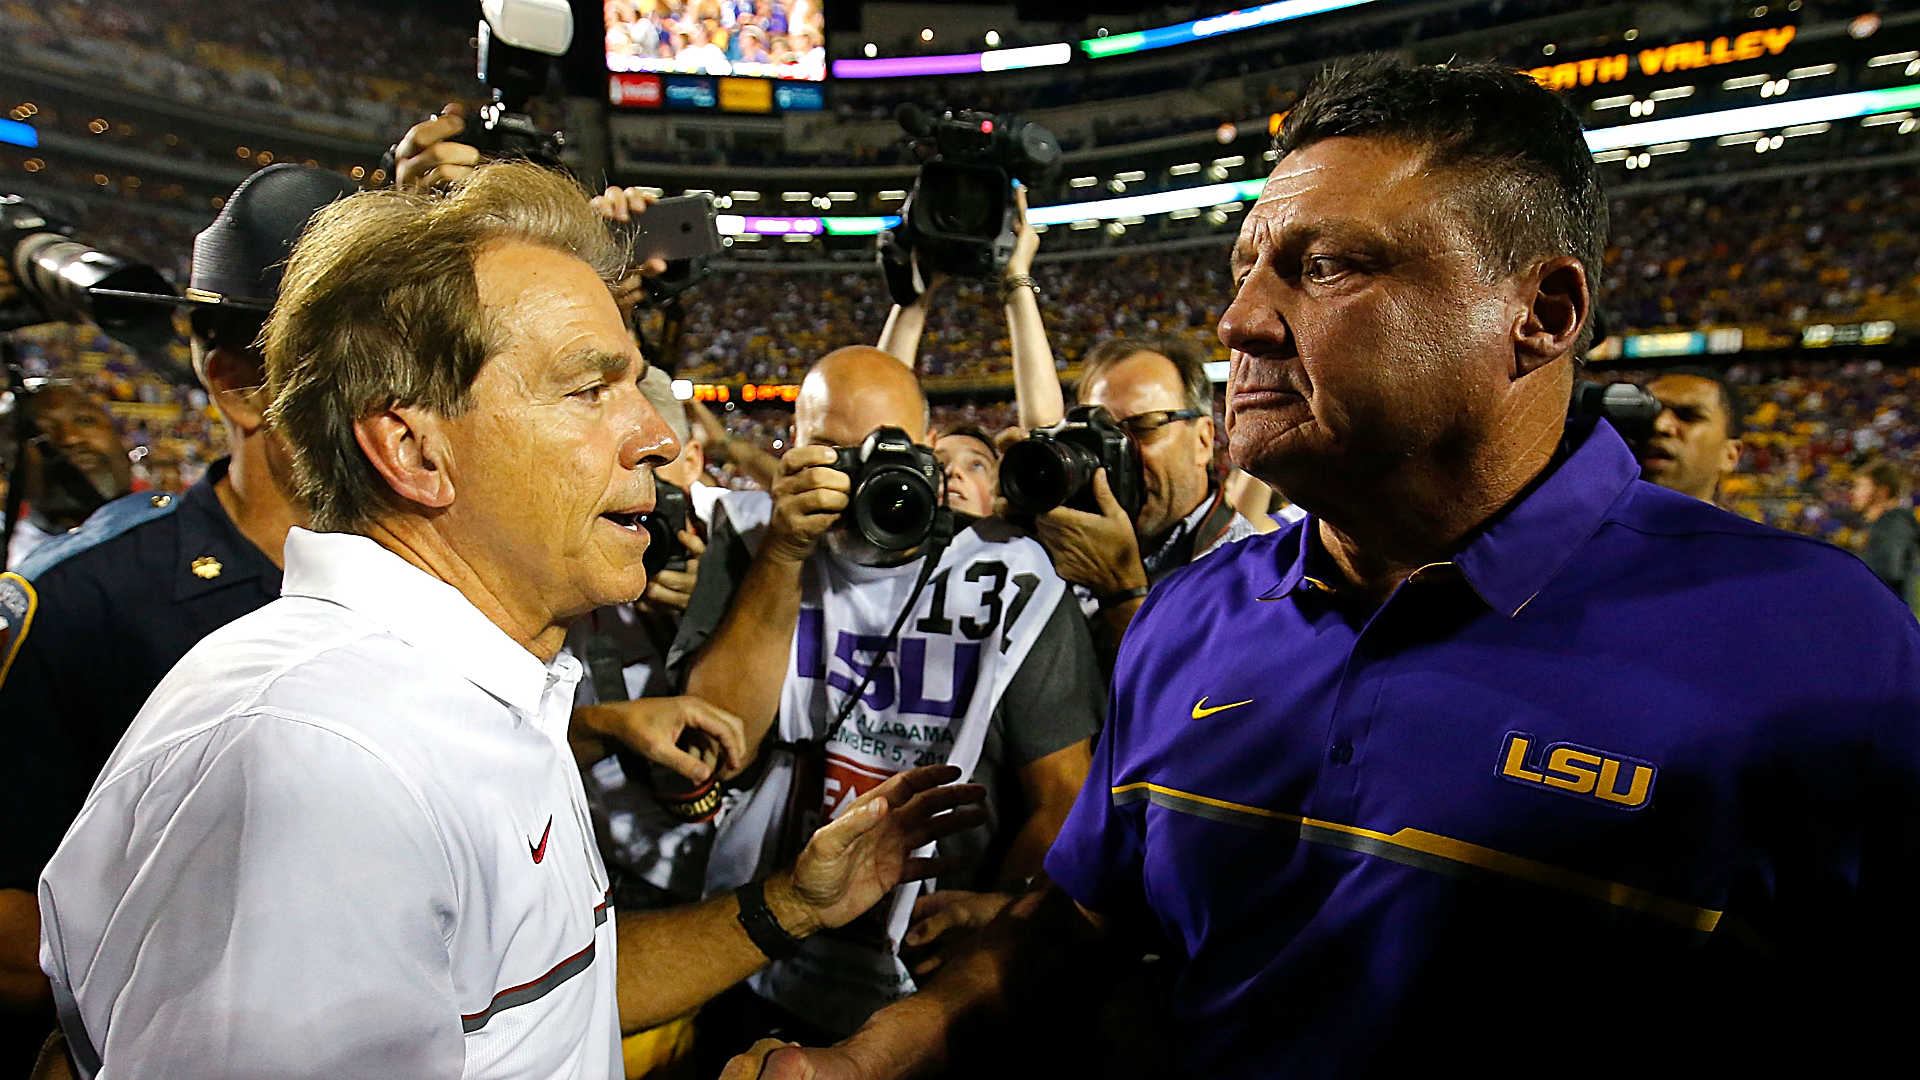 LSU vs. Alabama: Everything you need to know for huge SEC matchup